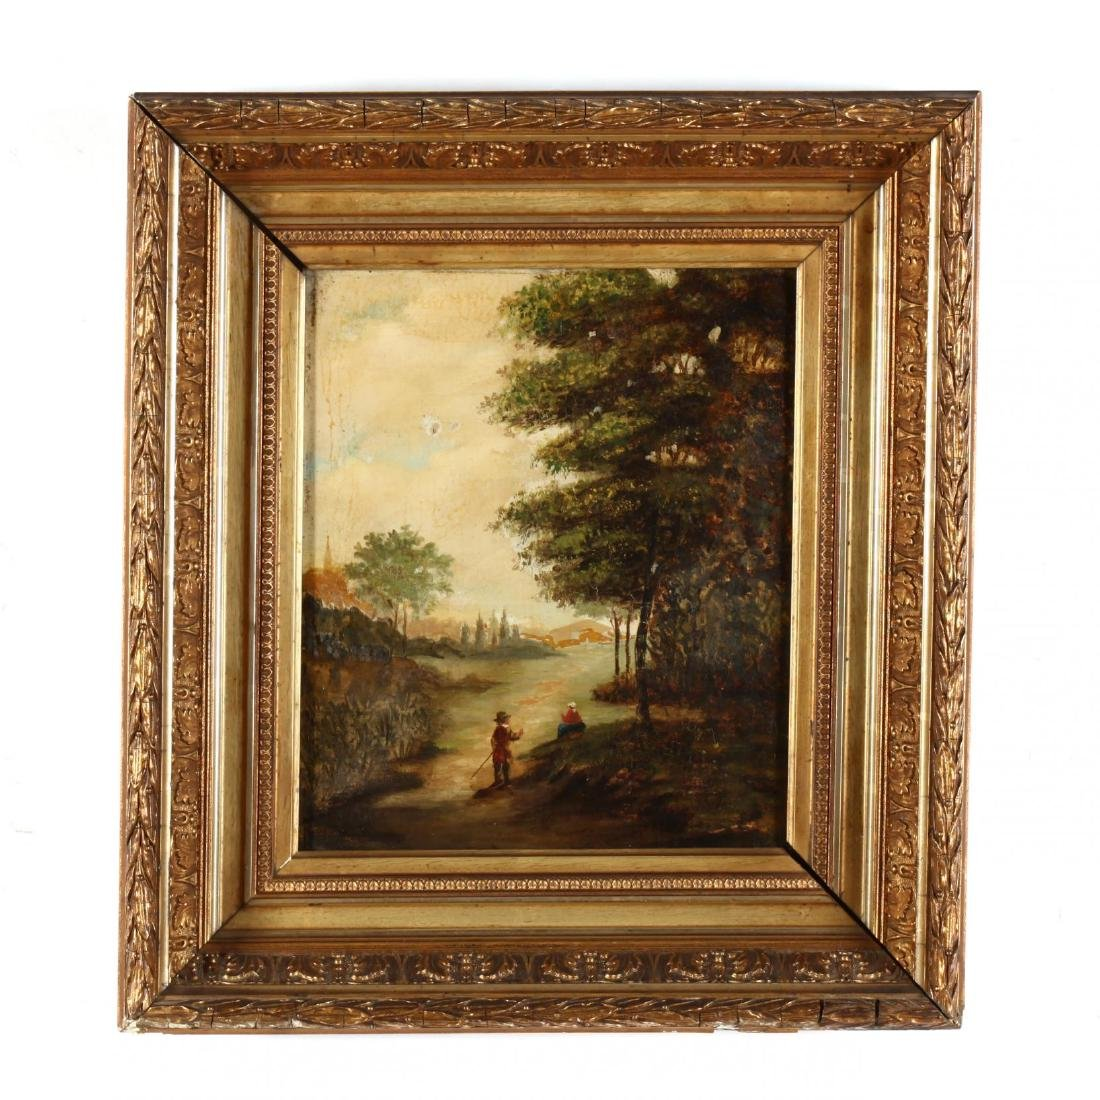 Antique Continental School Landscape Painting with